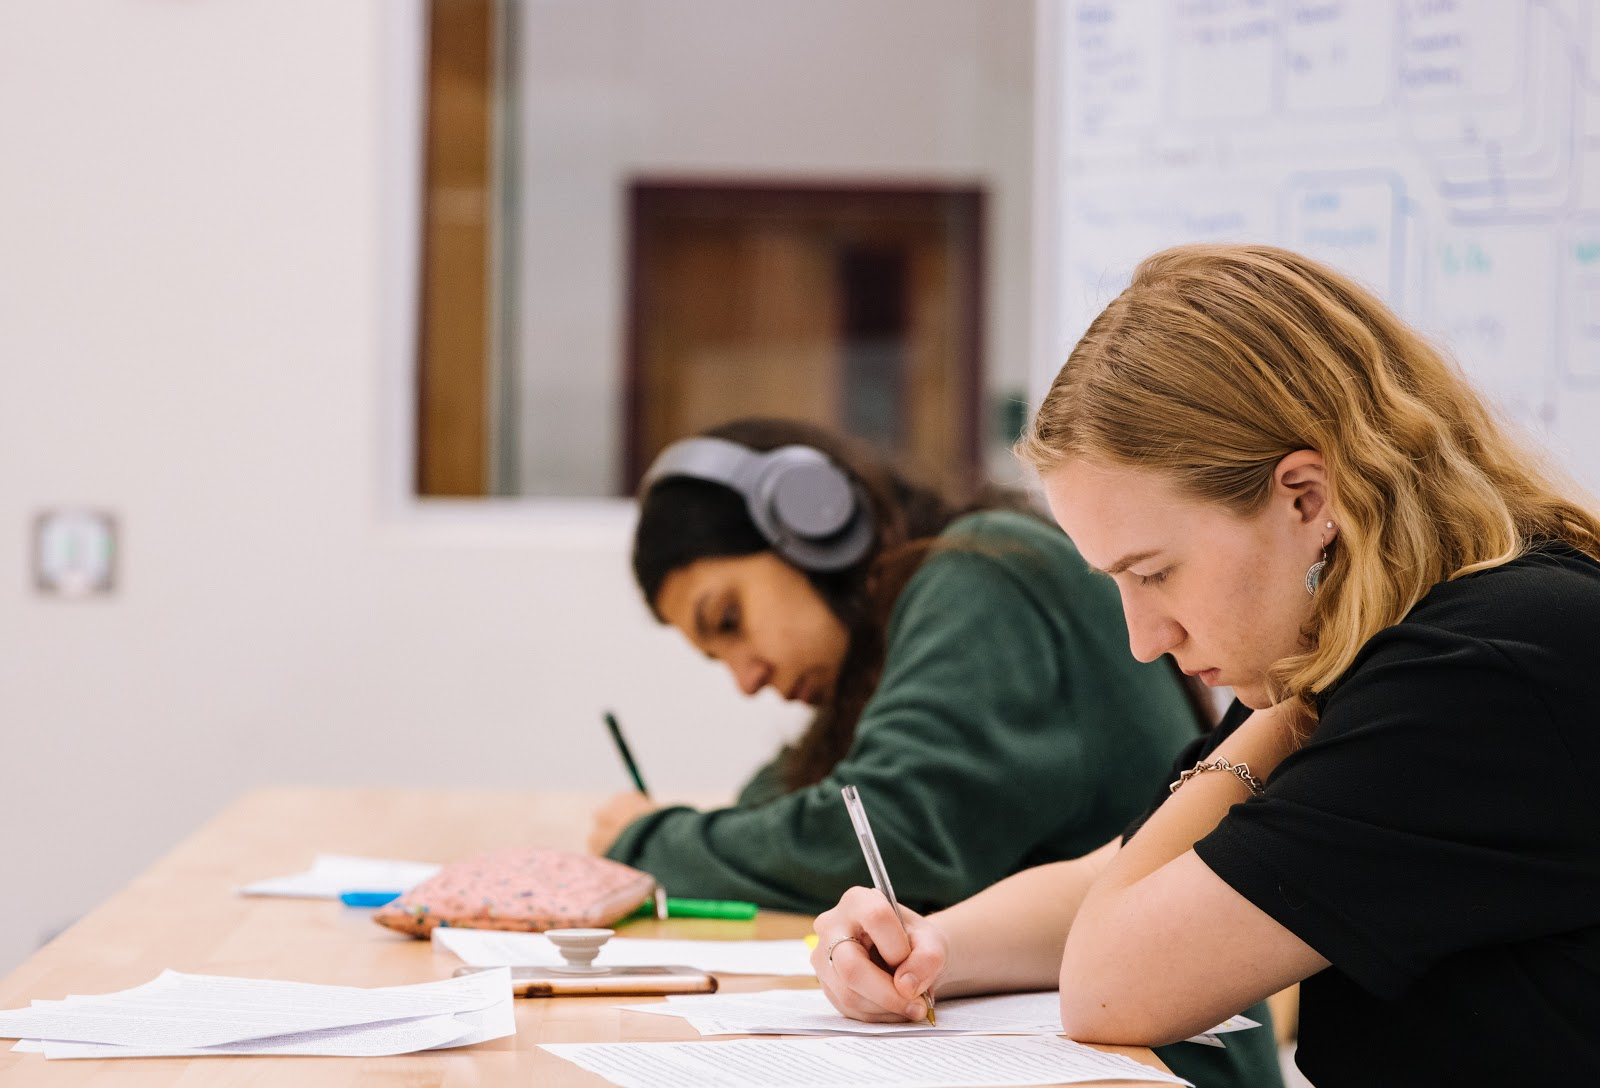 Two students sit at a table in a classroom writing on papers. A whiteboard in the background has some notes on it. One student is wearing headphones and neither are talking. Both look like they are in deep concentration.